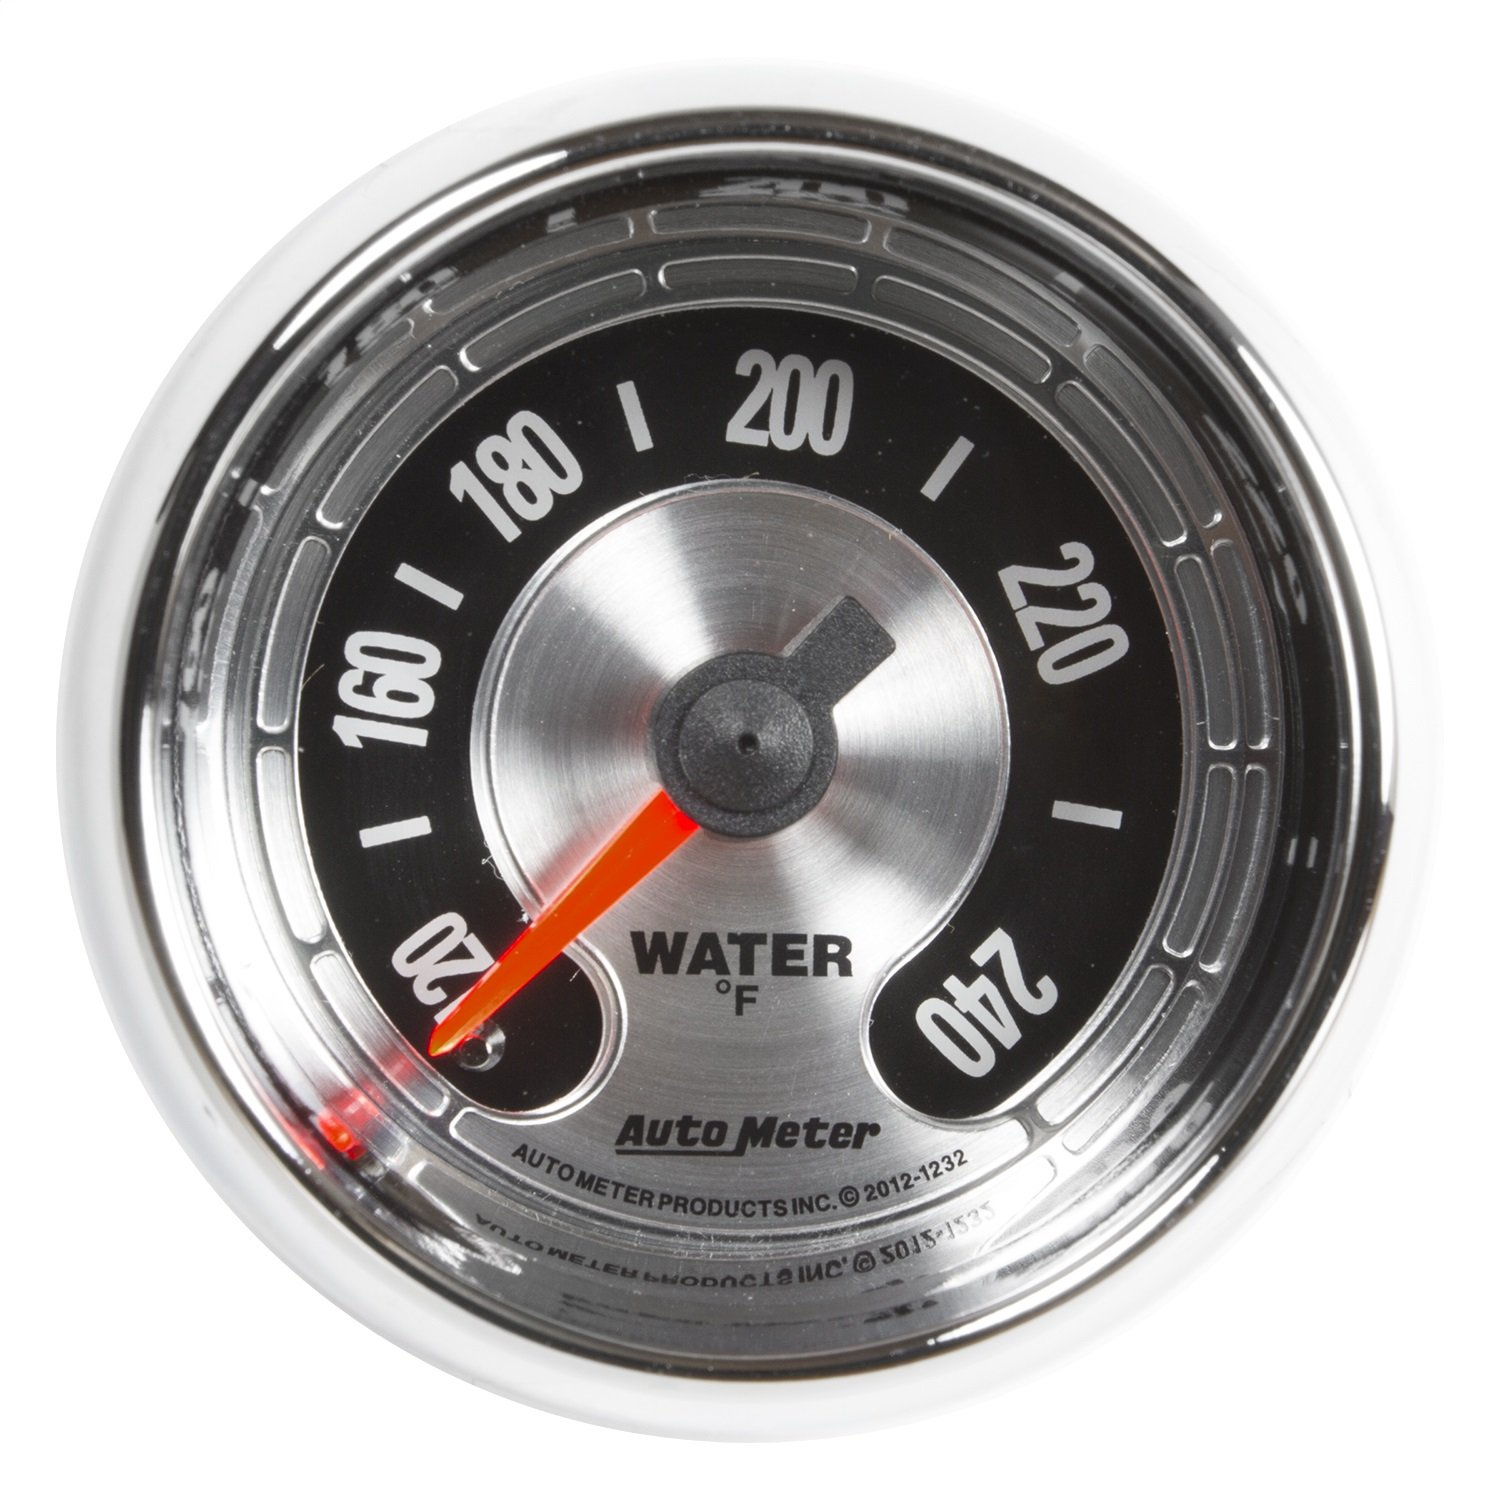 Auto Meter 1232 American Muscle 2-1/16' Electric Water Temperature Gauge (100-240 Degree F, 52.4mm)